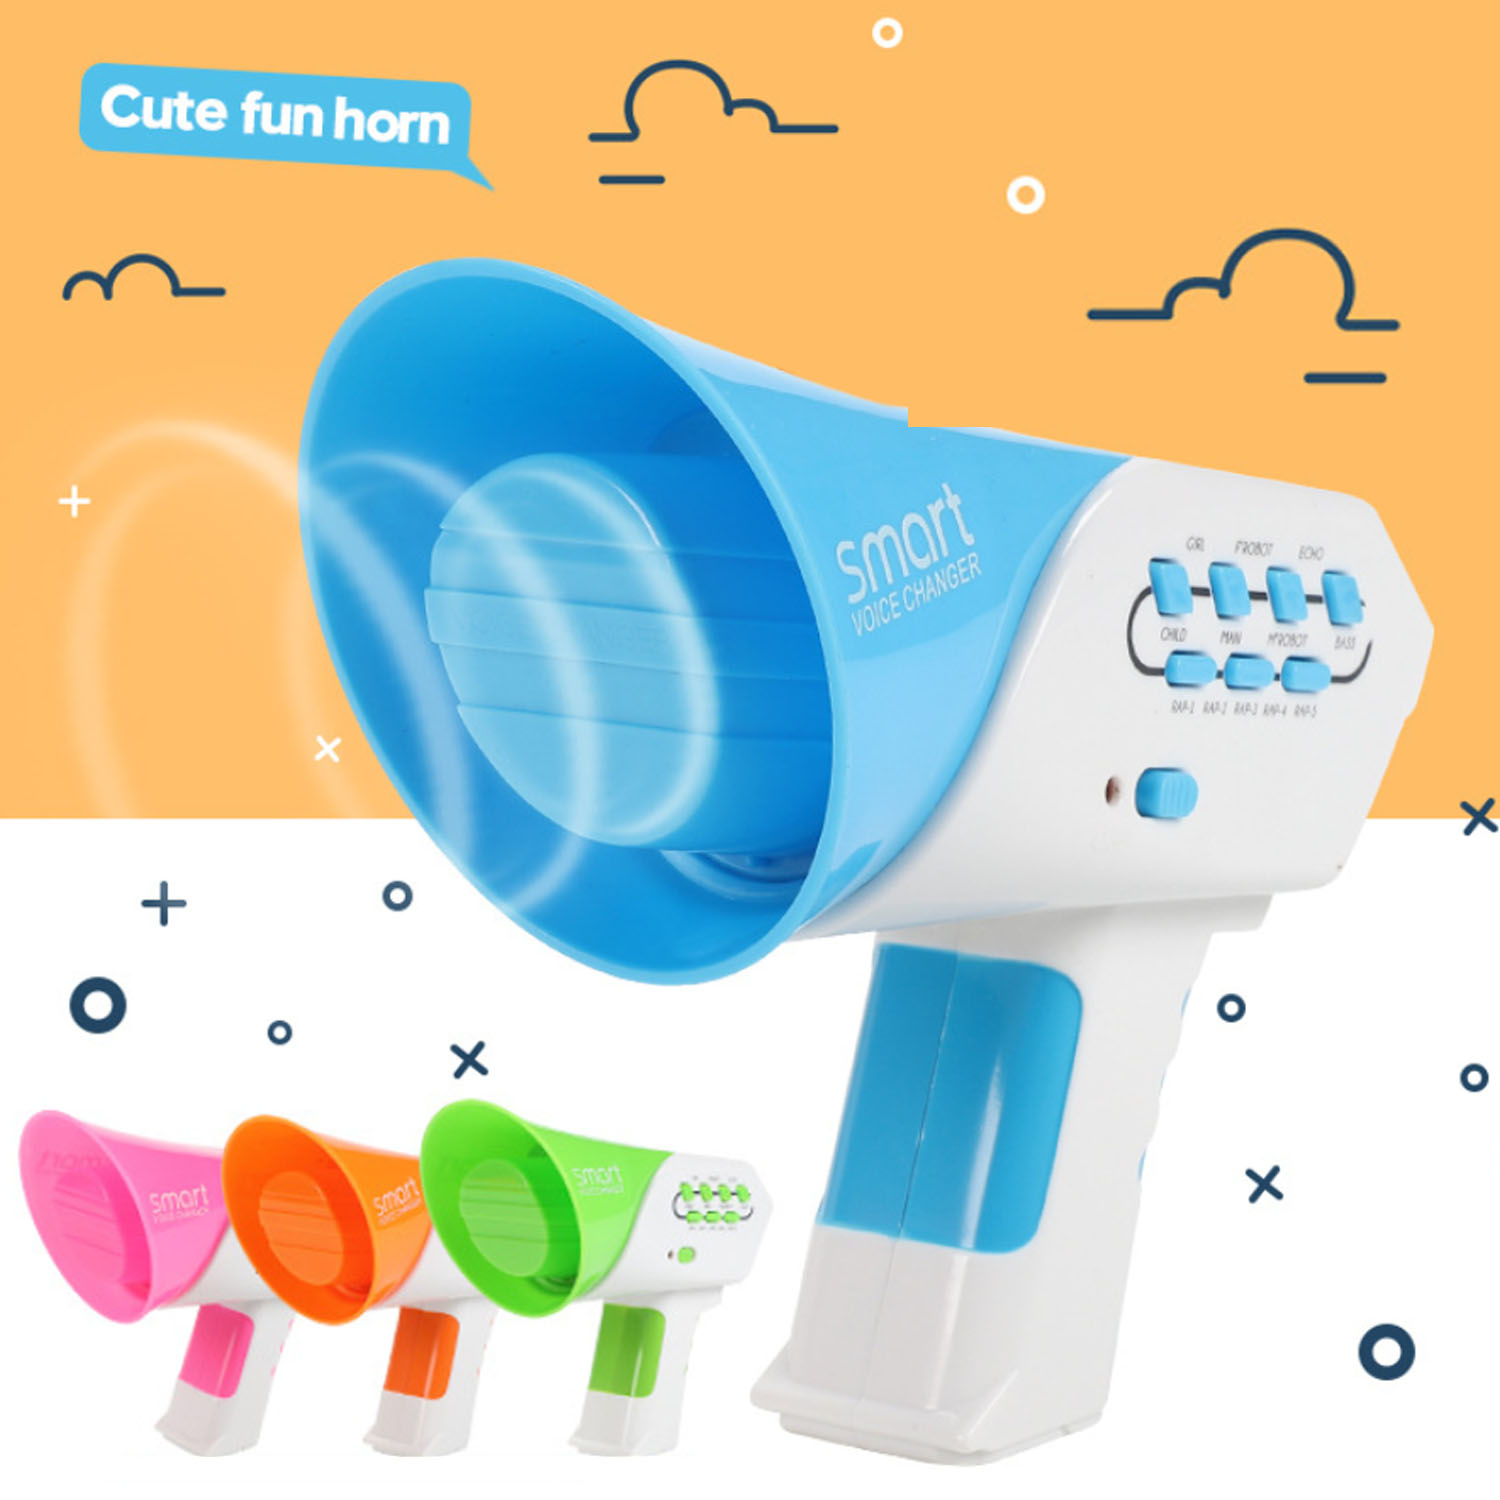 Kids Funny Electronic Mini Multi Voice Changer Horn Voice-changing Loudspeaker Intercom Toys with 7 Different Voice Modifiers image